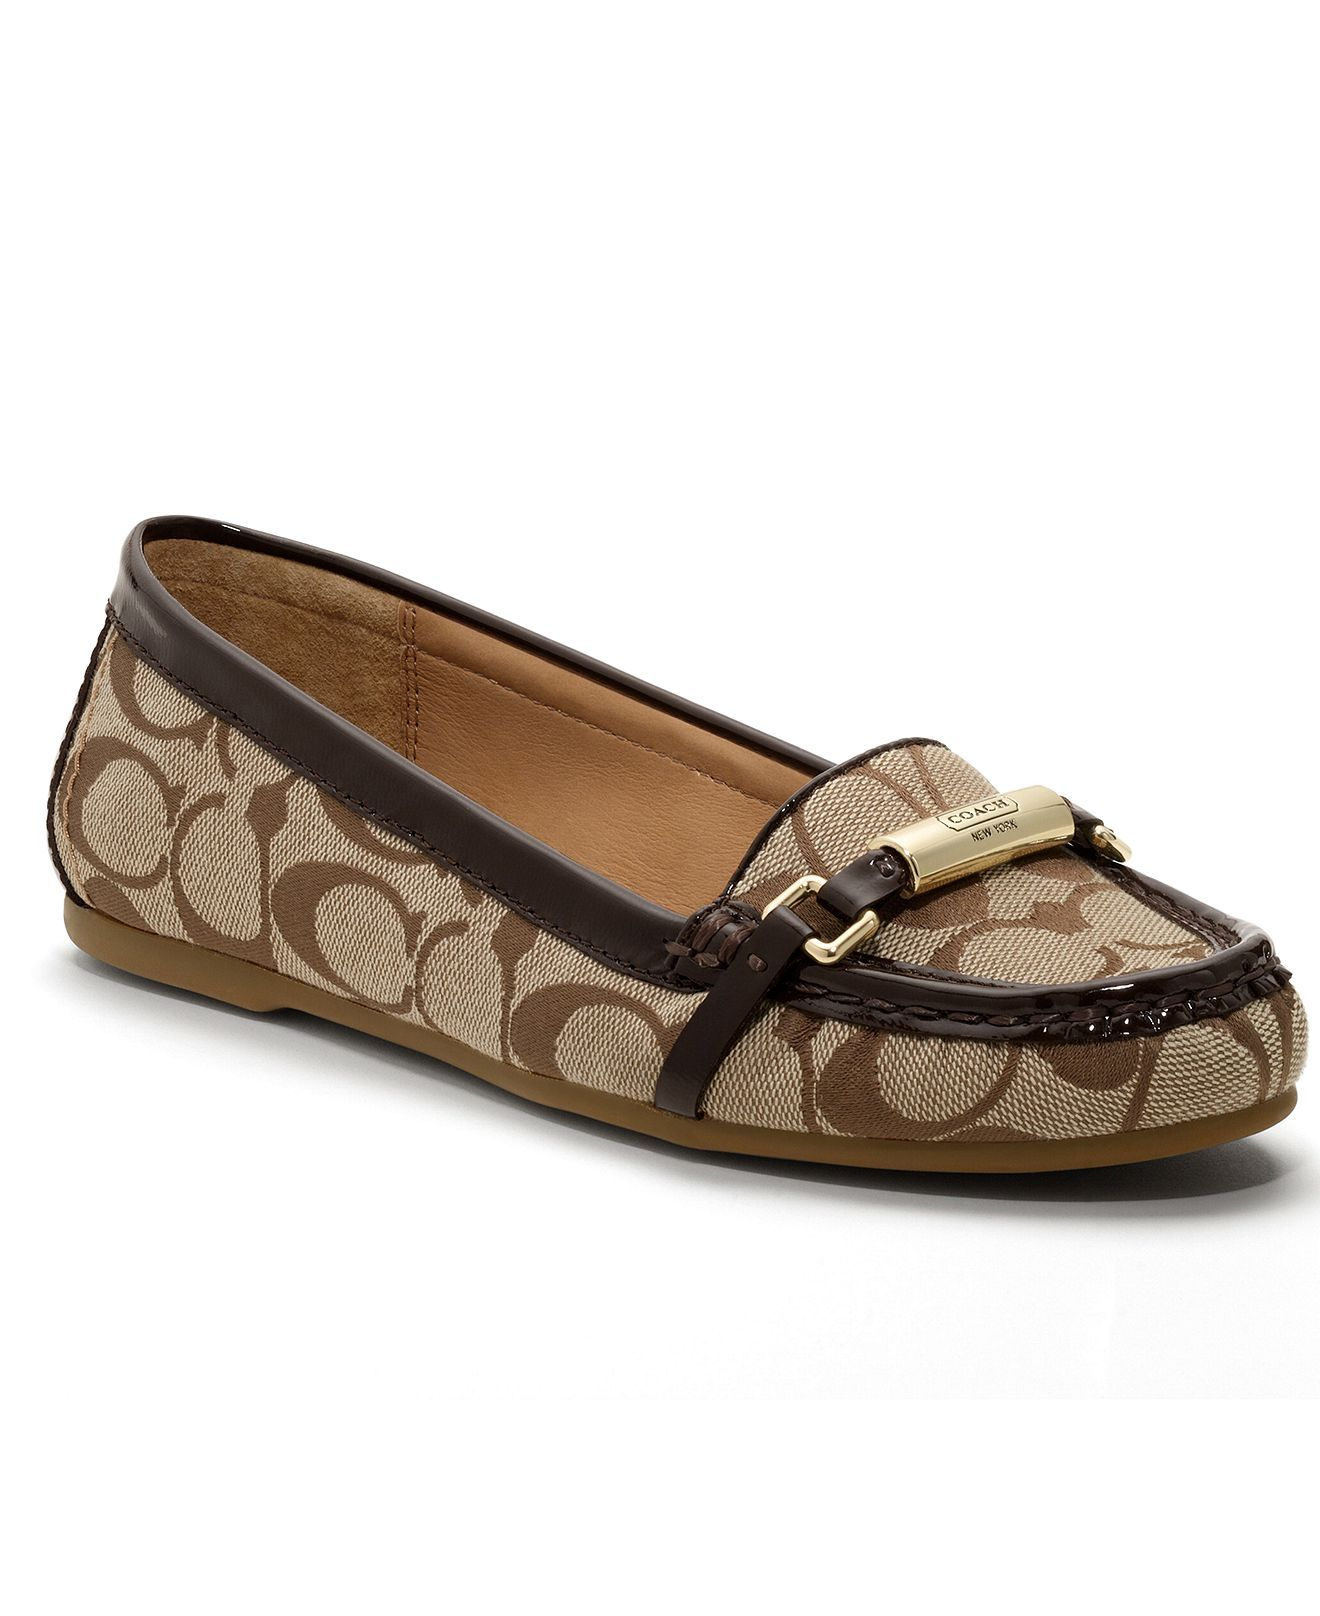 COACH BERDINA LOAFERS, my Dad just got these for my little Mom for xmas- so cute!